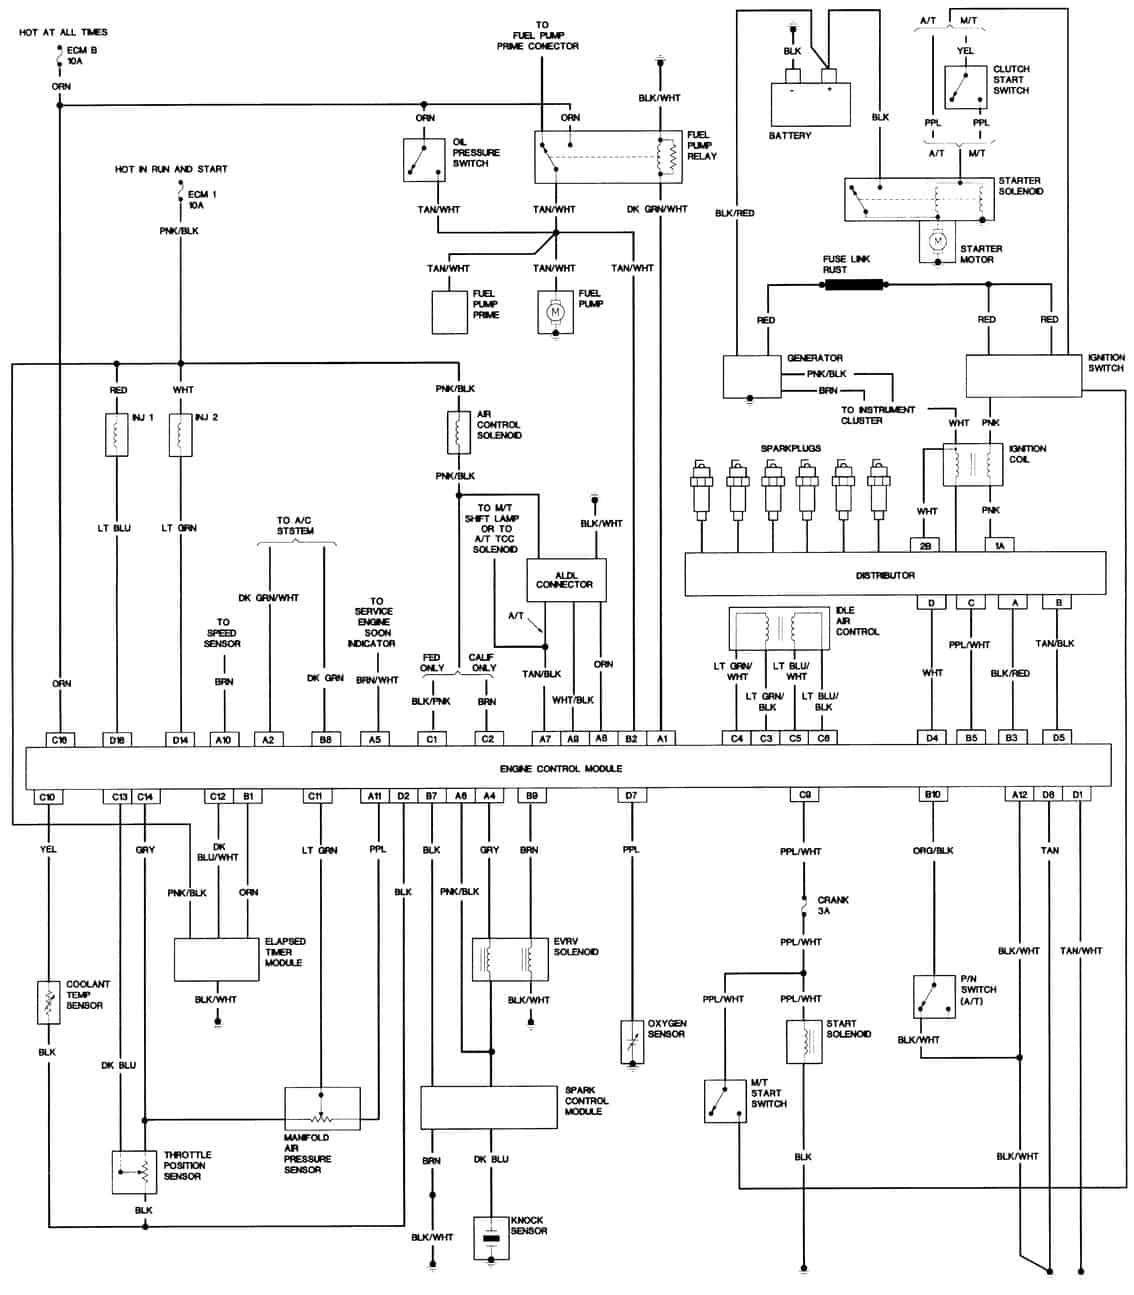 88 Vw Cabriolet Engine Diagram Get Free Image About Wiring 1988 As Well 1989 Chevy Silverado 1500 On Saab 93 Diagrams Rh Savitrigroup Co